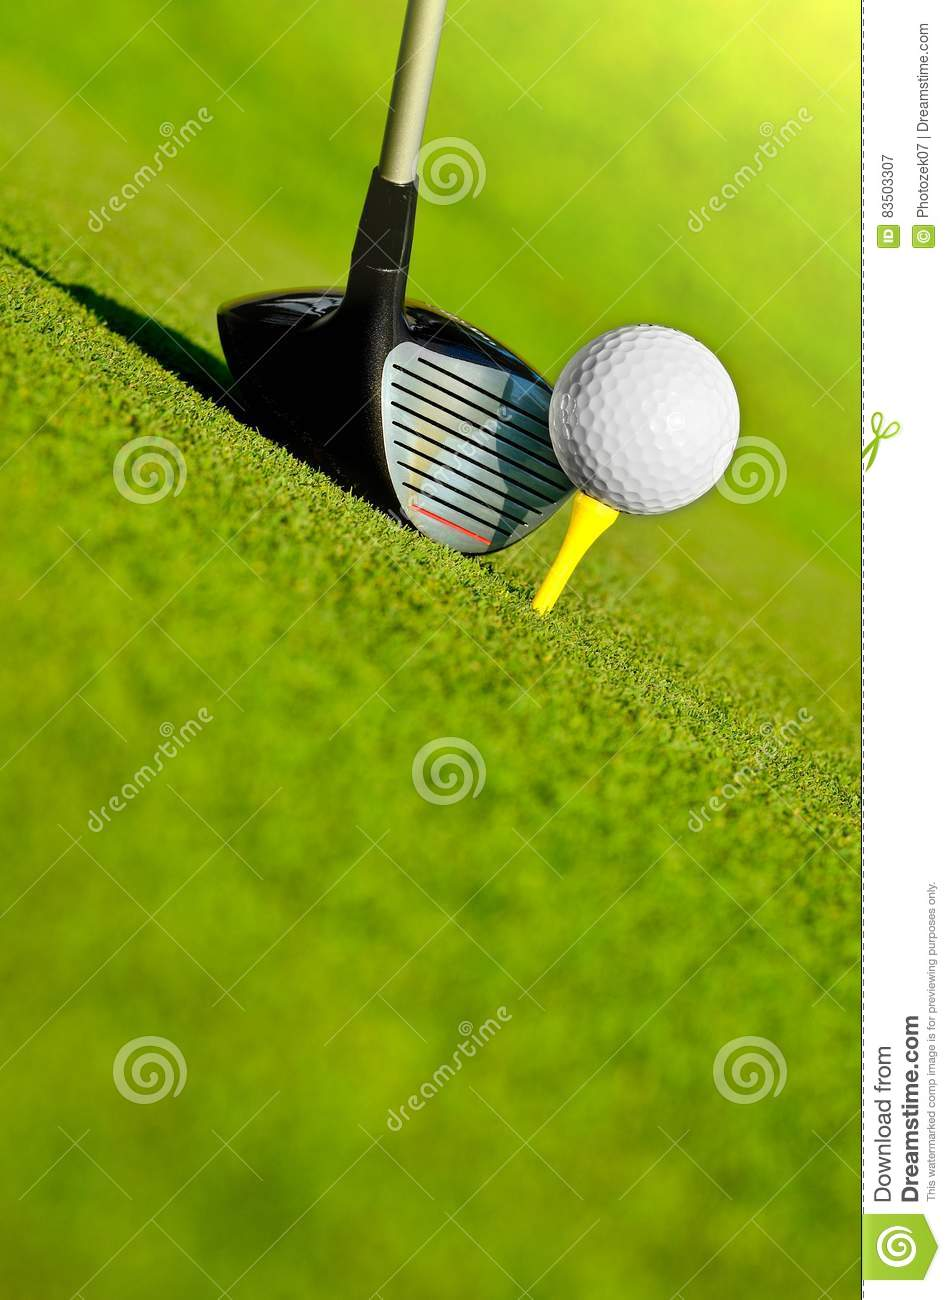 Driver and ball on tee